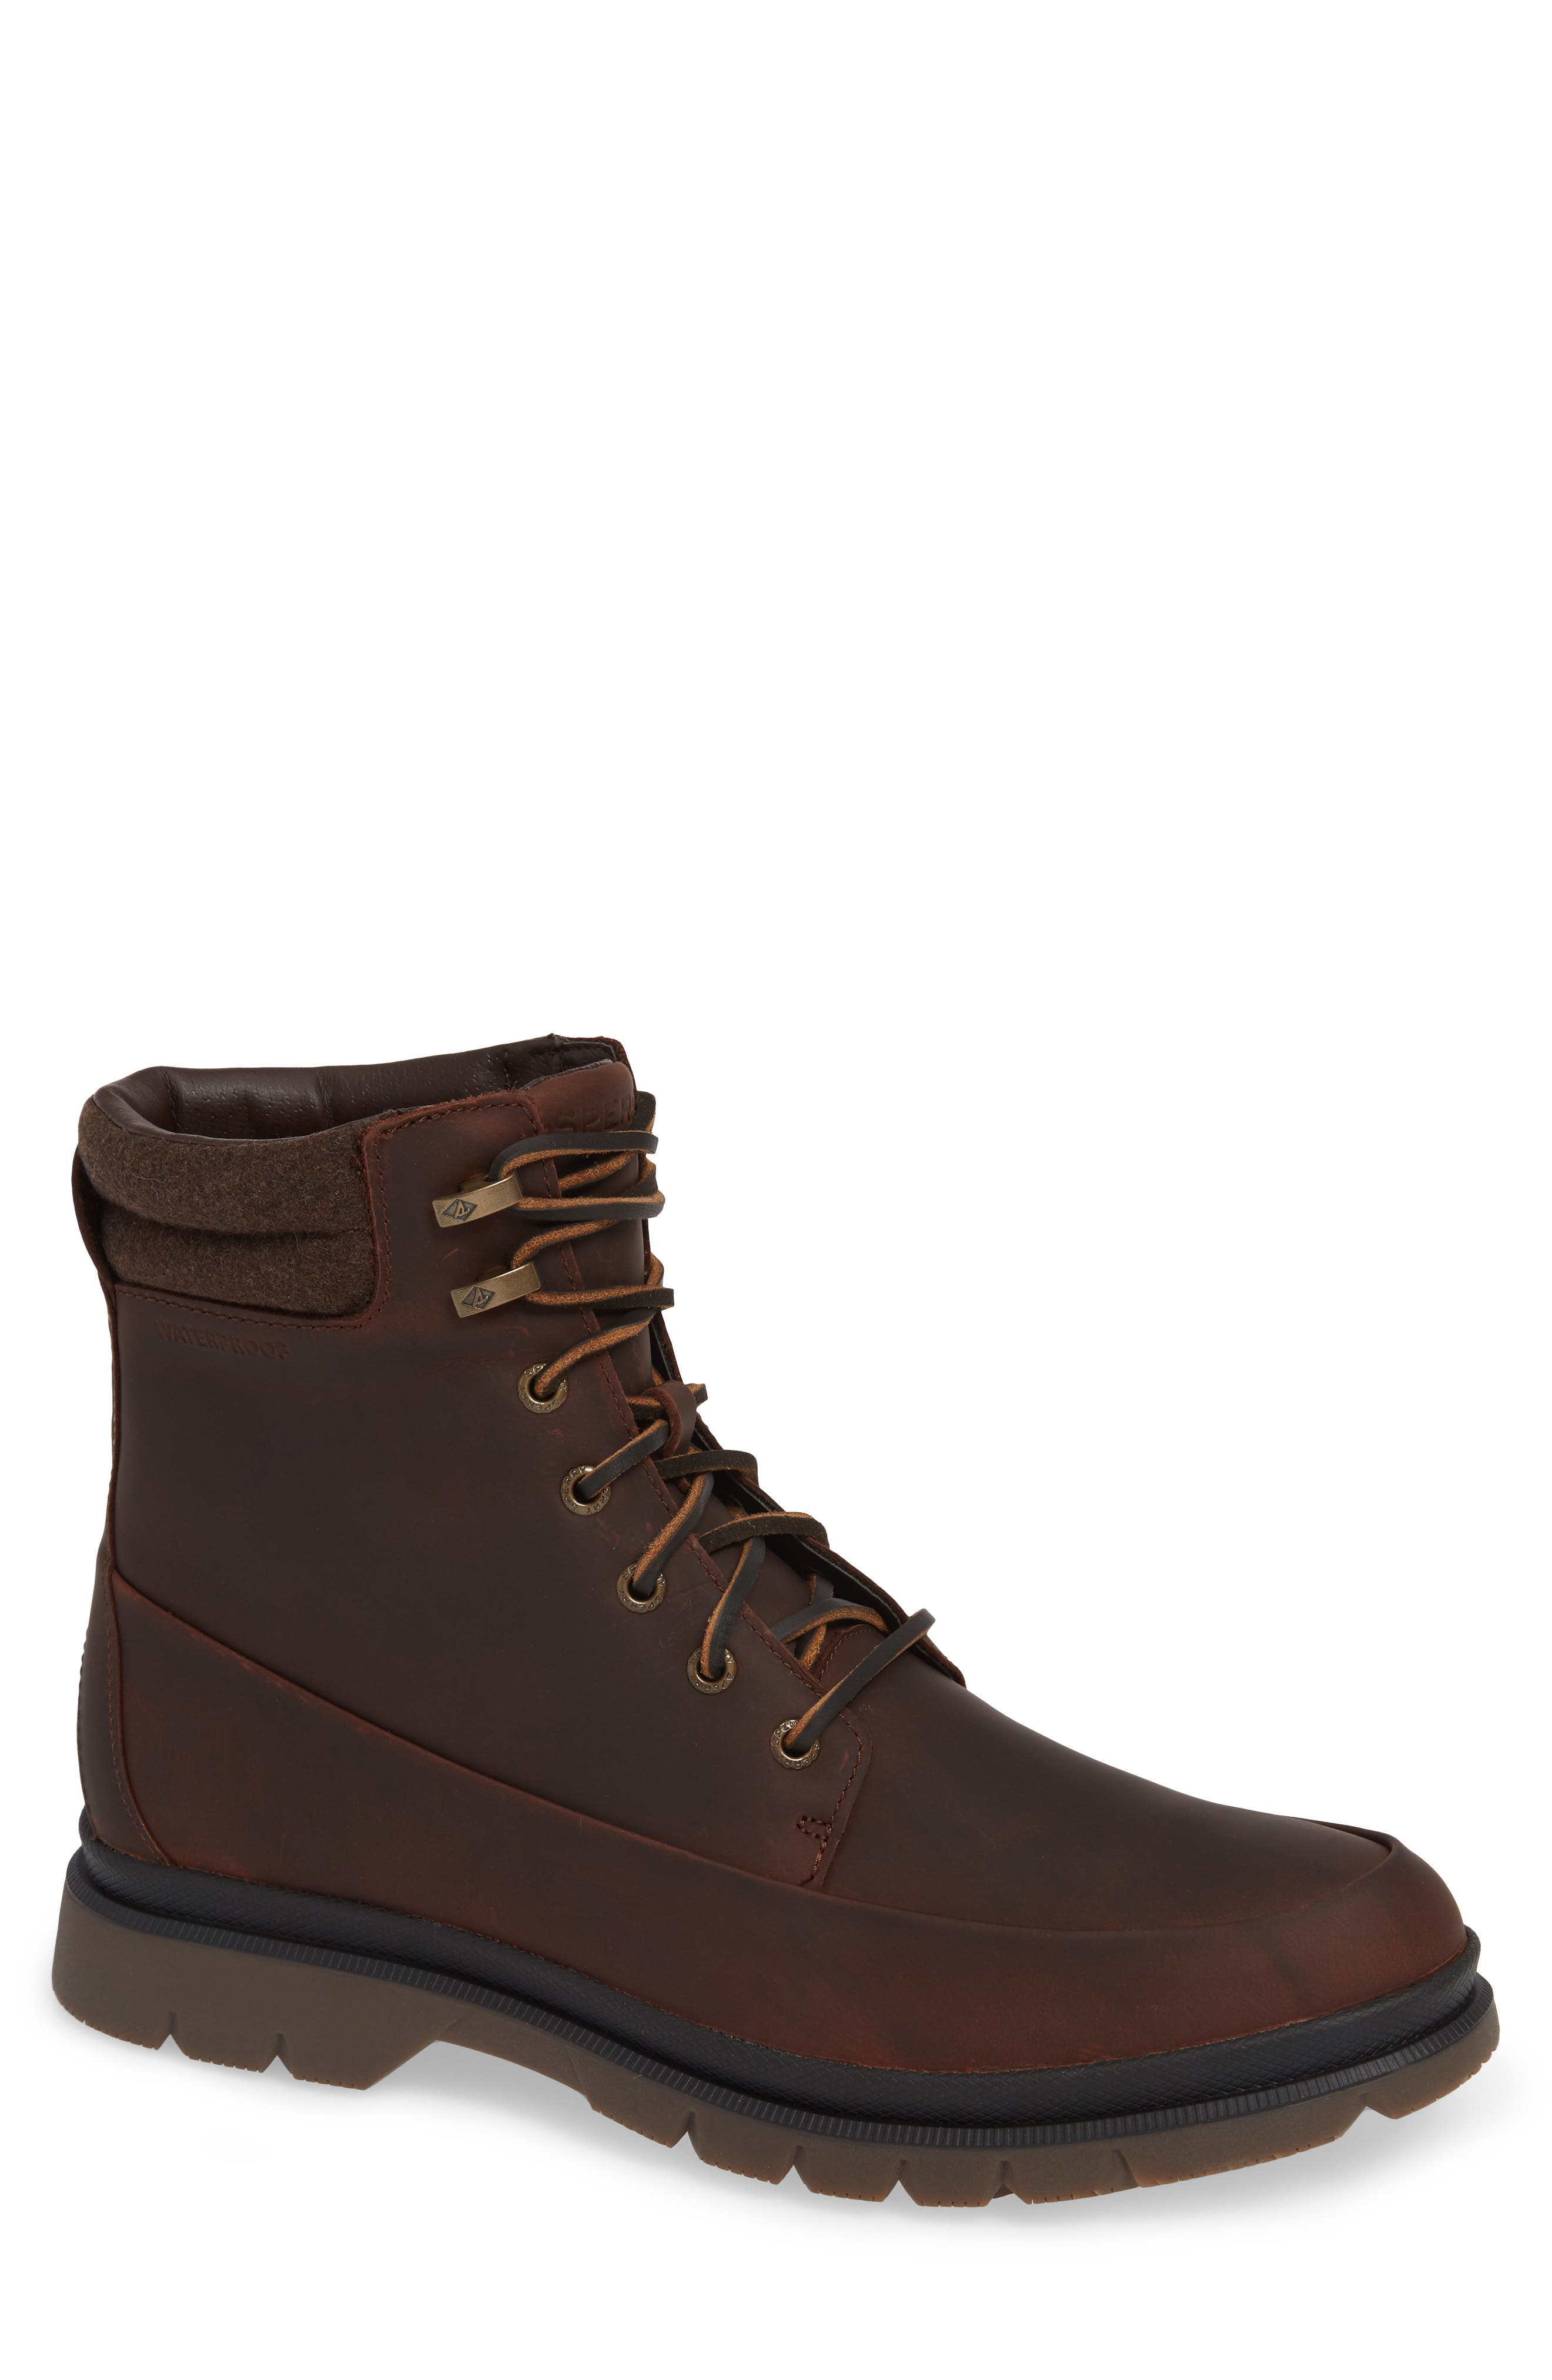 SPERRY, Watertown Waterproof Moc Toe Boot, Main thumbnail 1, color, BROWN